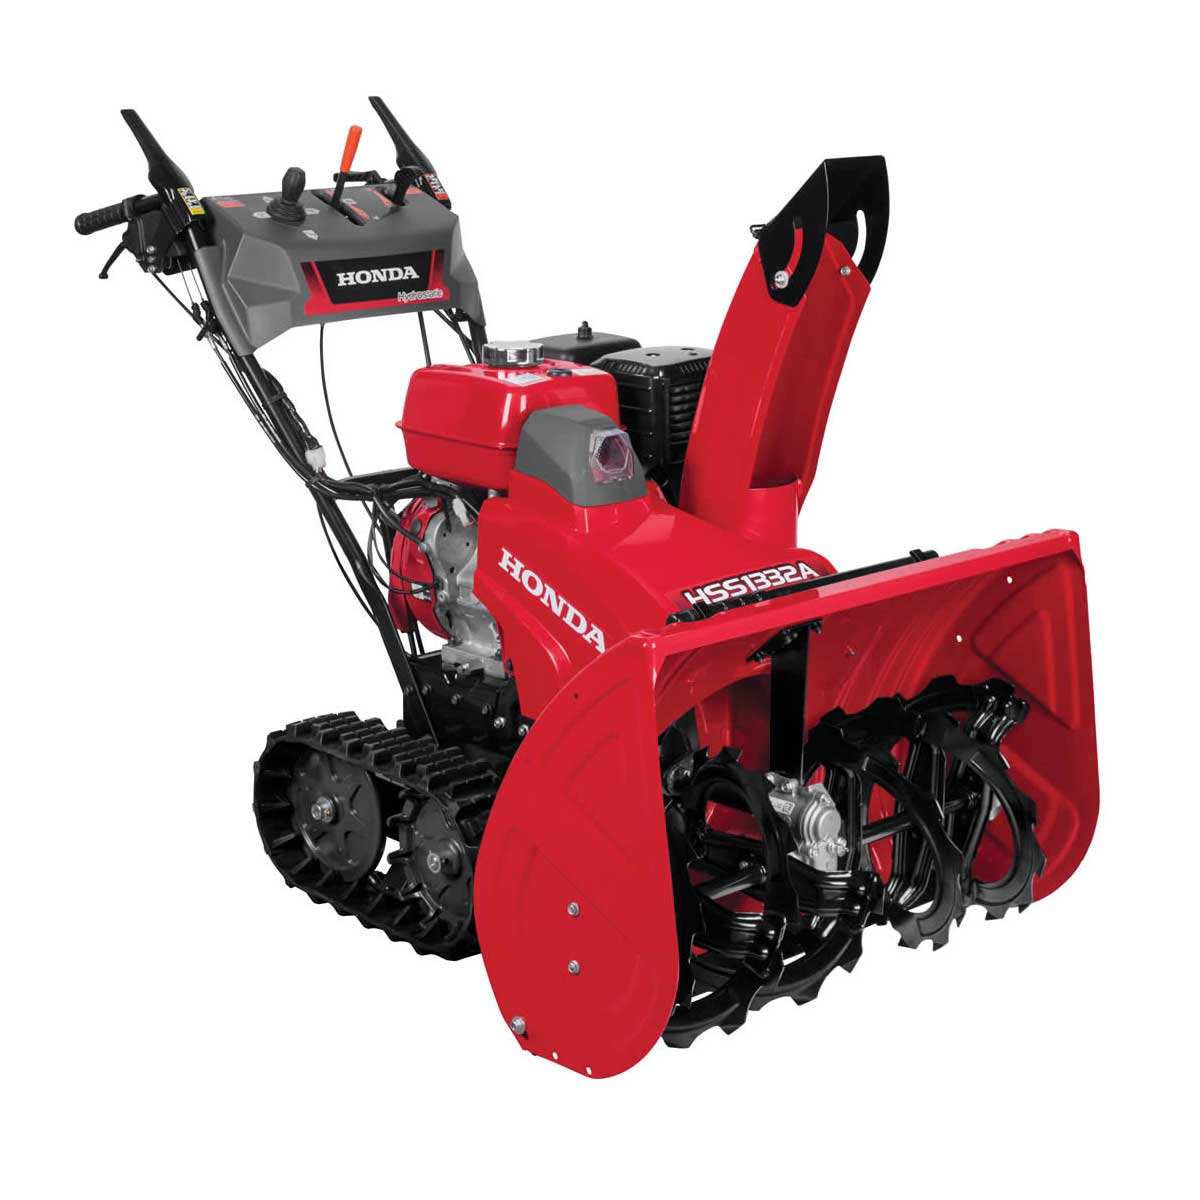 Honda Snow Blower HSS1332AT / HSS1332ATD